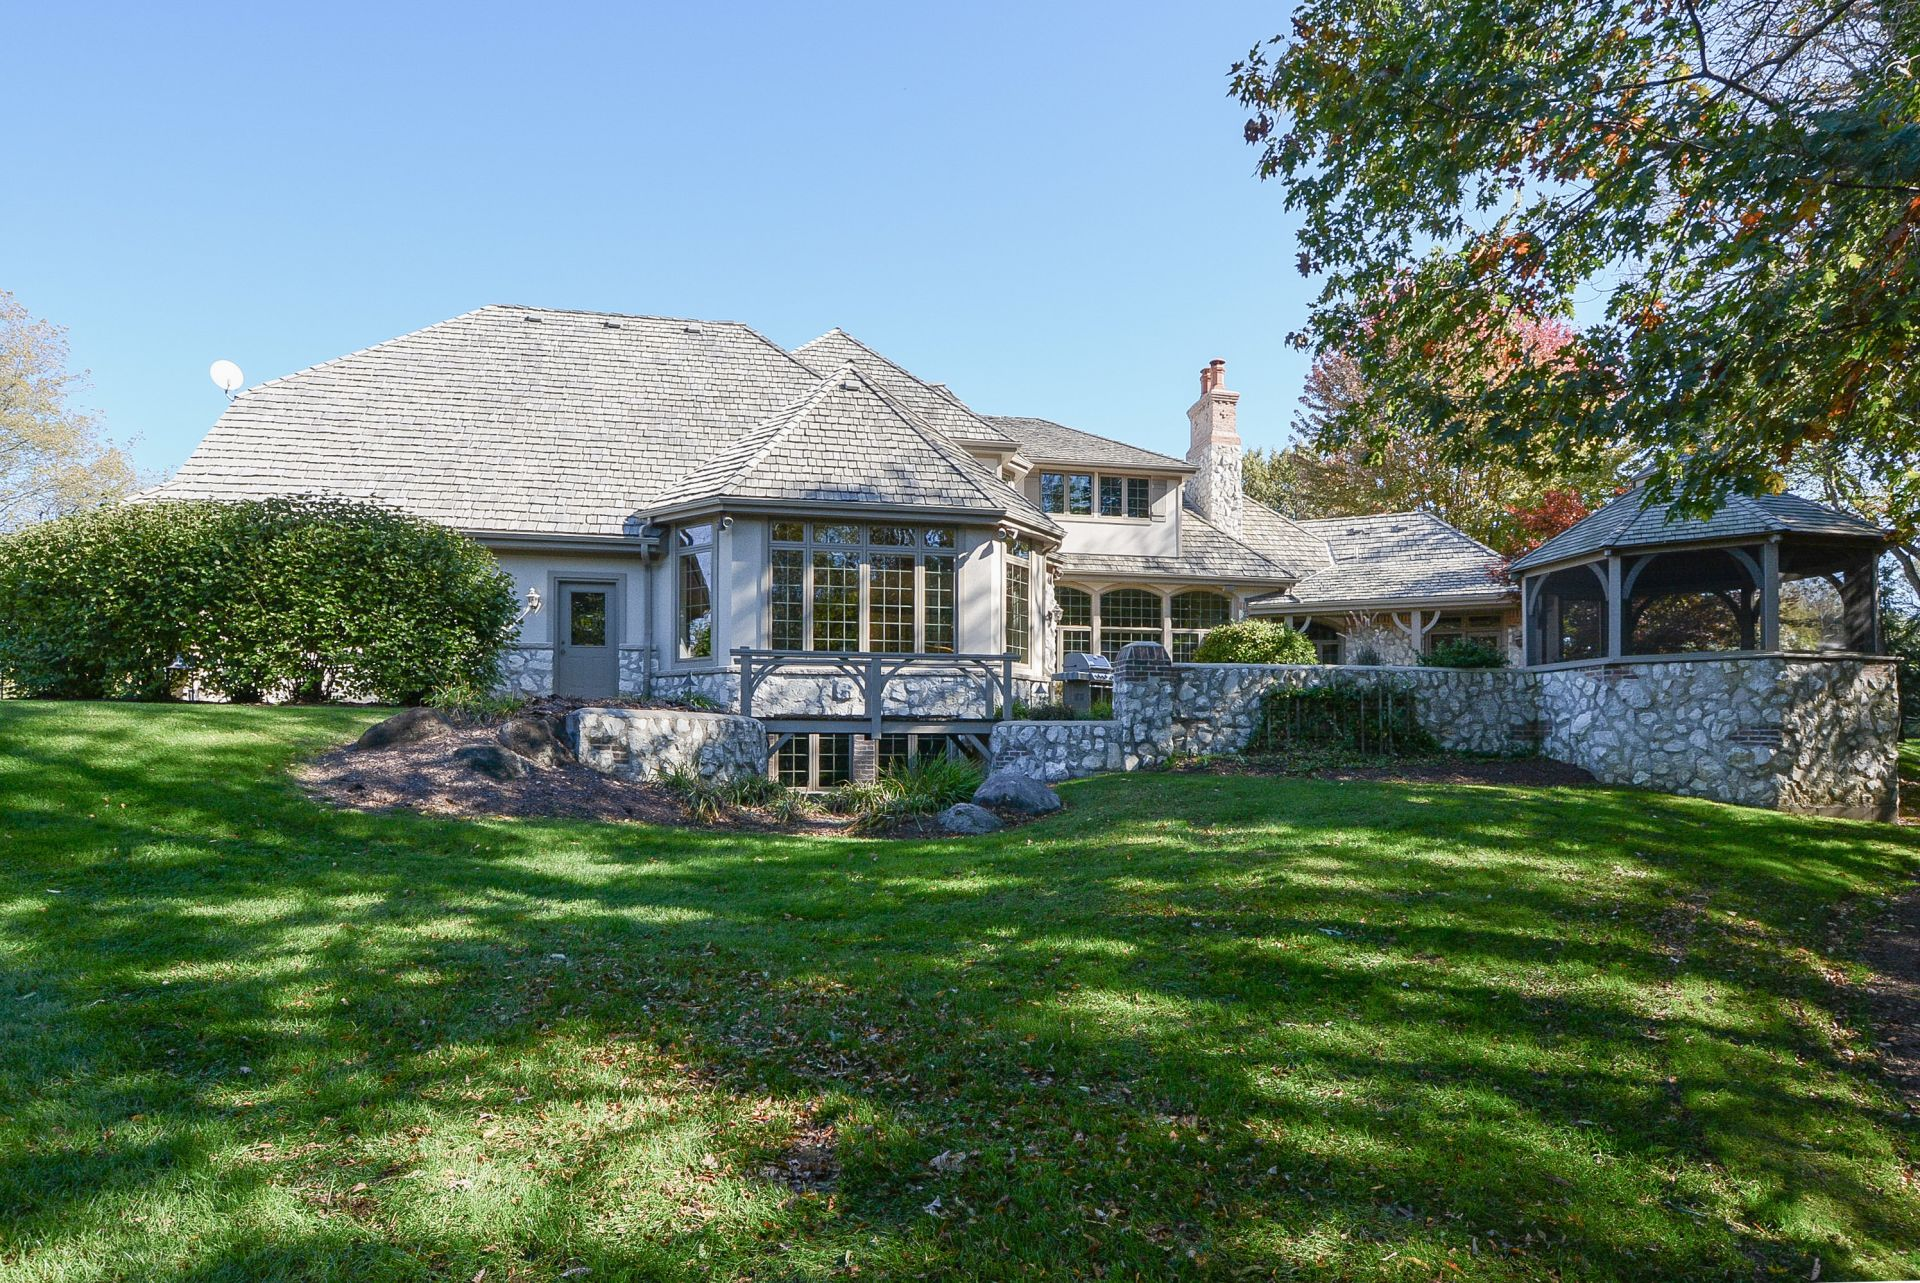 Exquisite Country Manor Featured on Business Journal Home of the Day